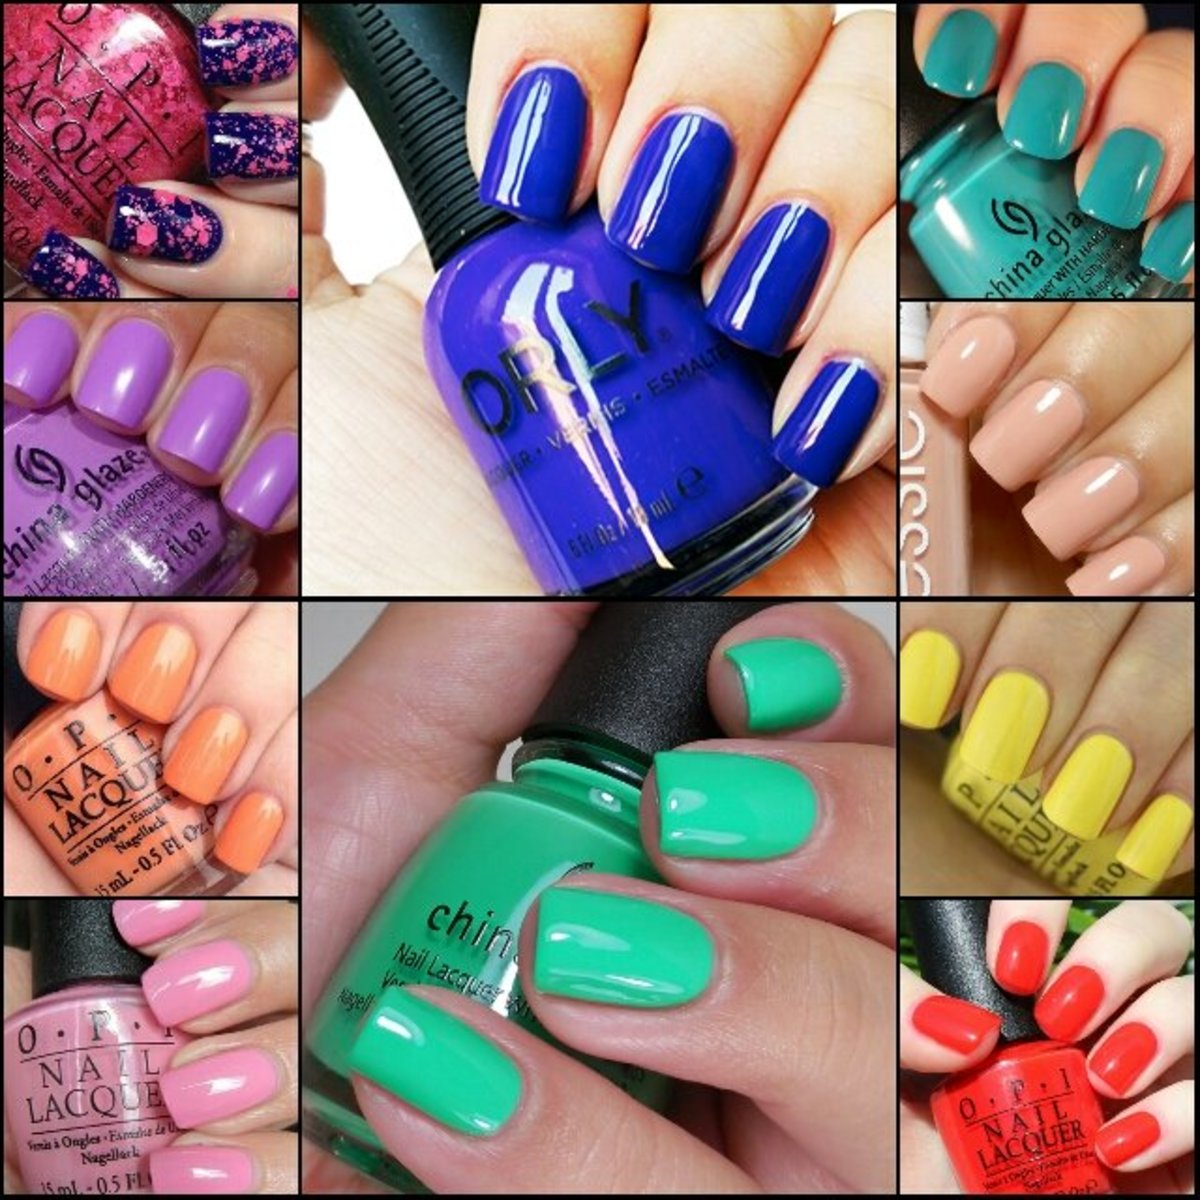 Gel Nail Polish Trends: Top 10 Nail Polish Colors For 2015